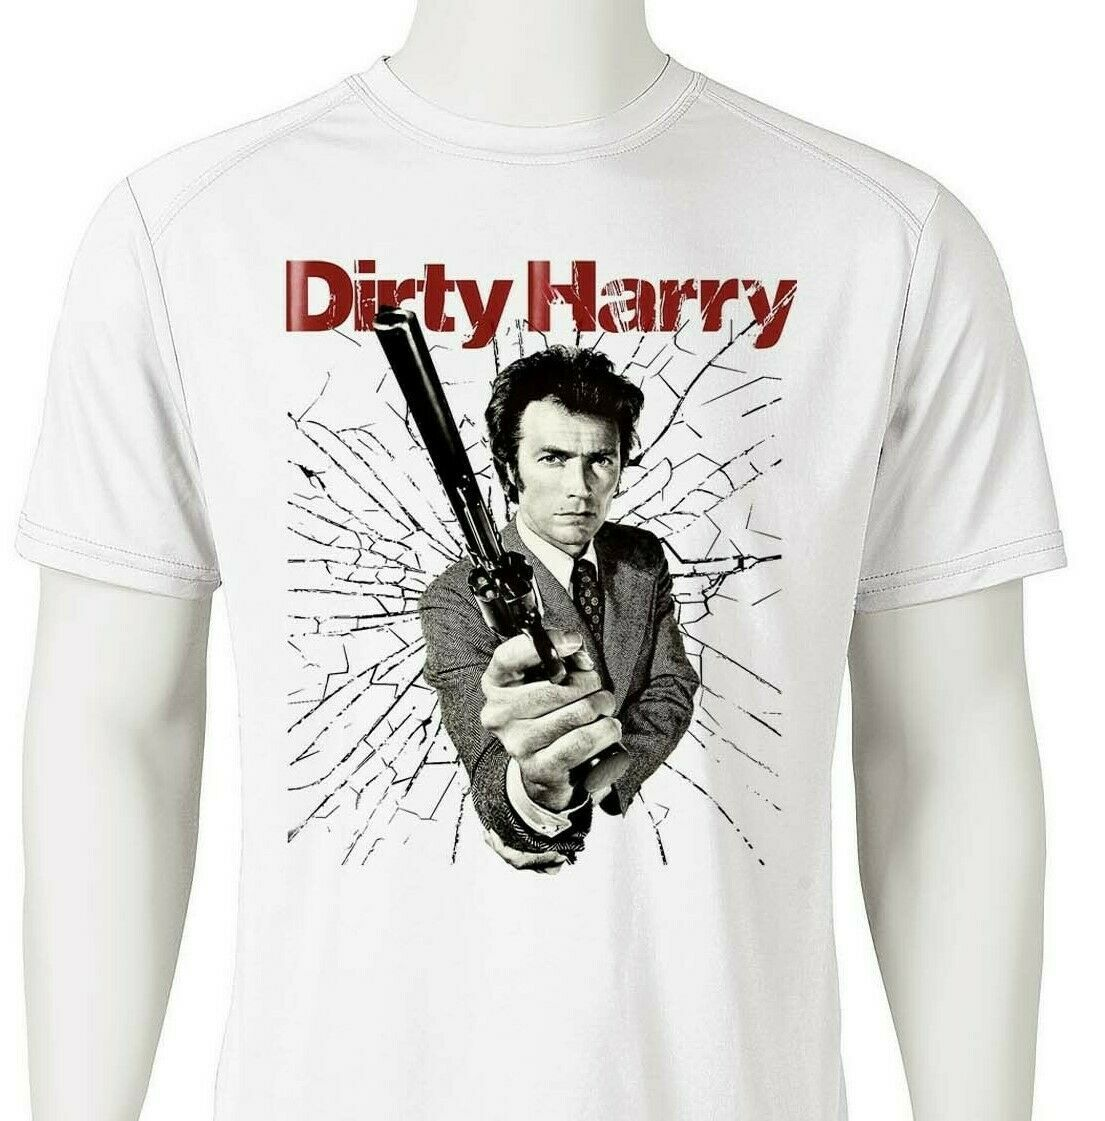 Dirty harry 80 s retro dri fit graphic tshirt for sale online